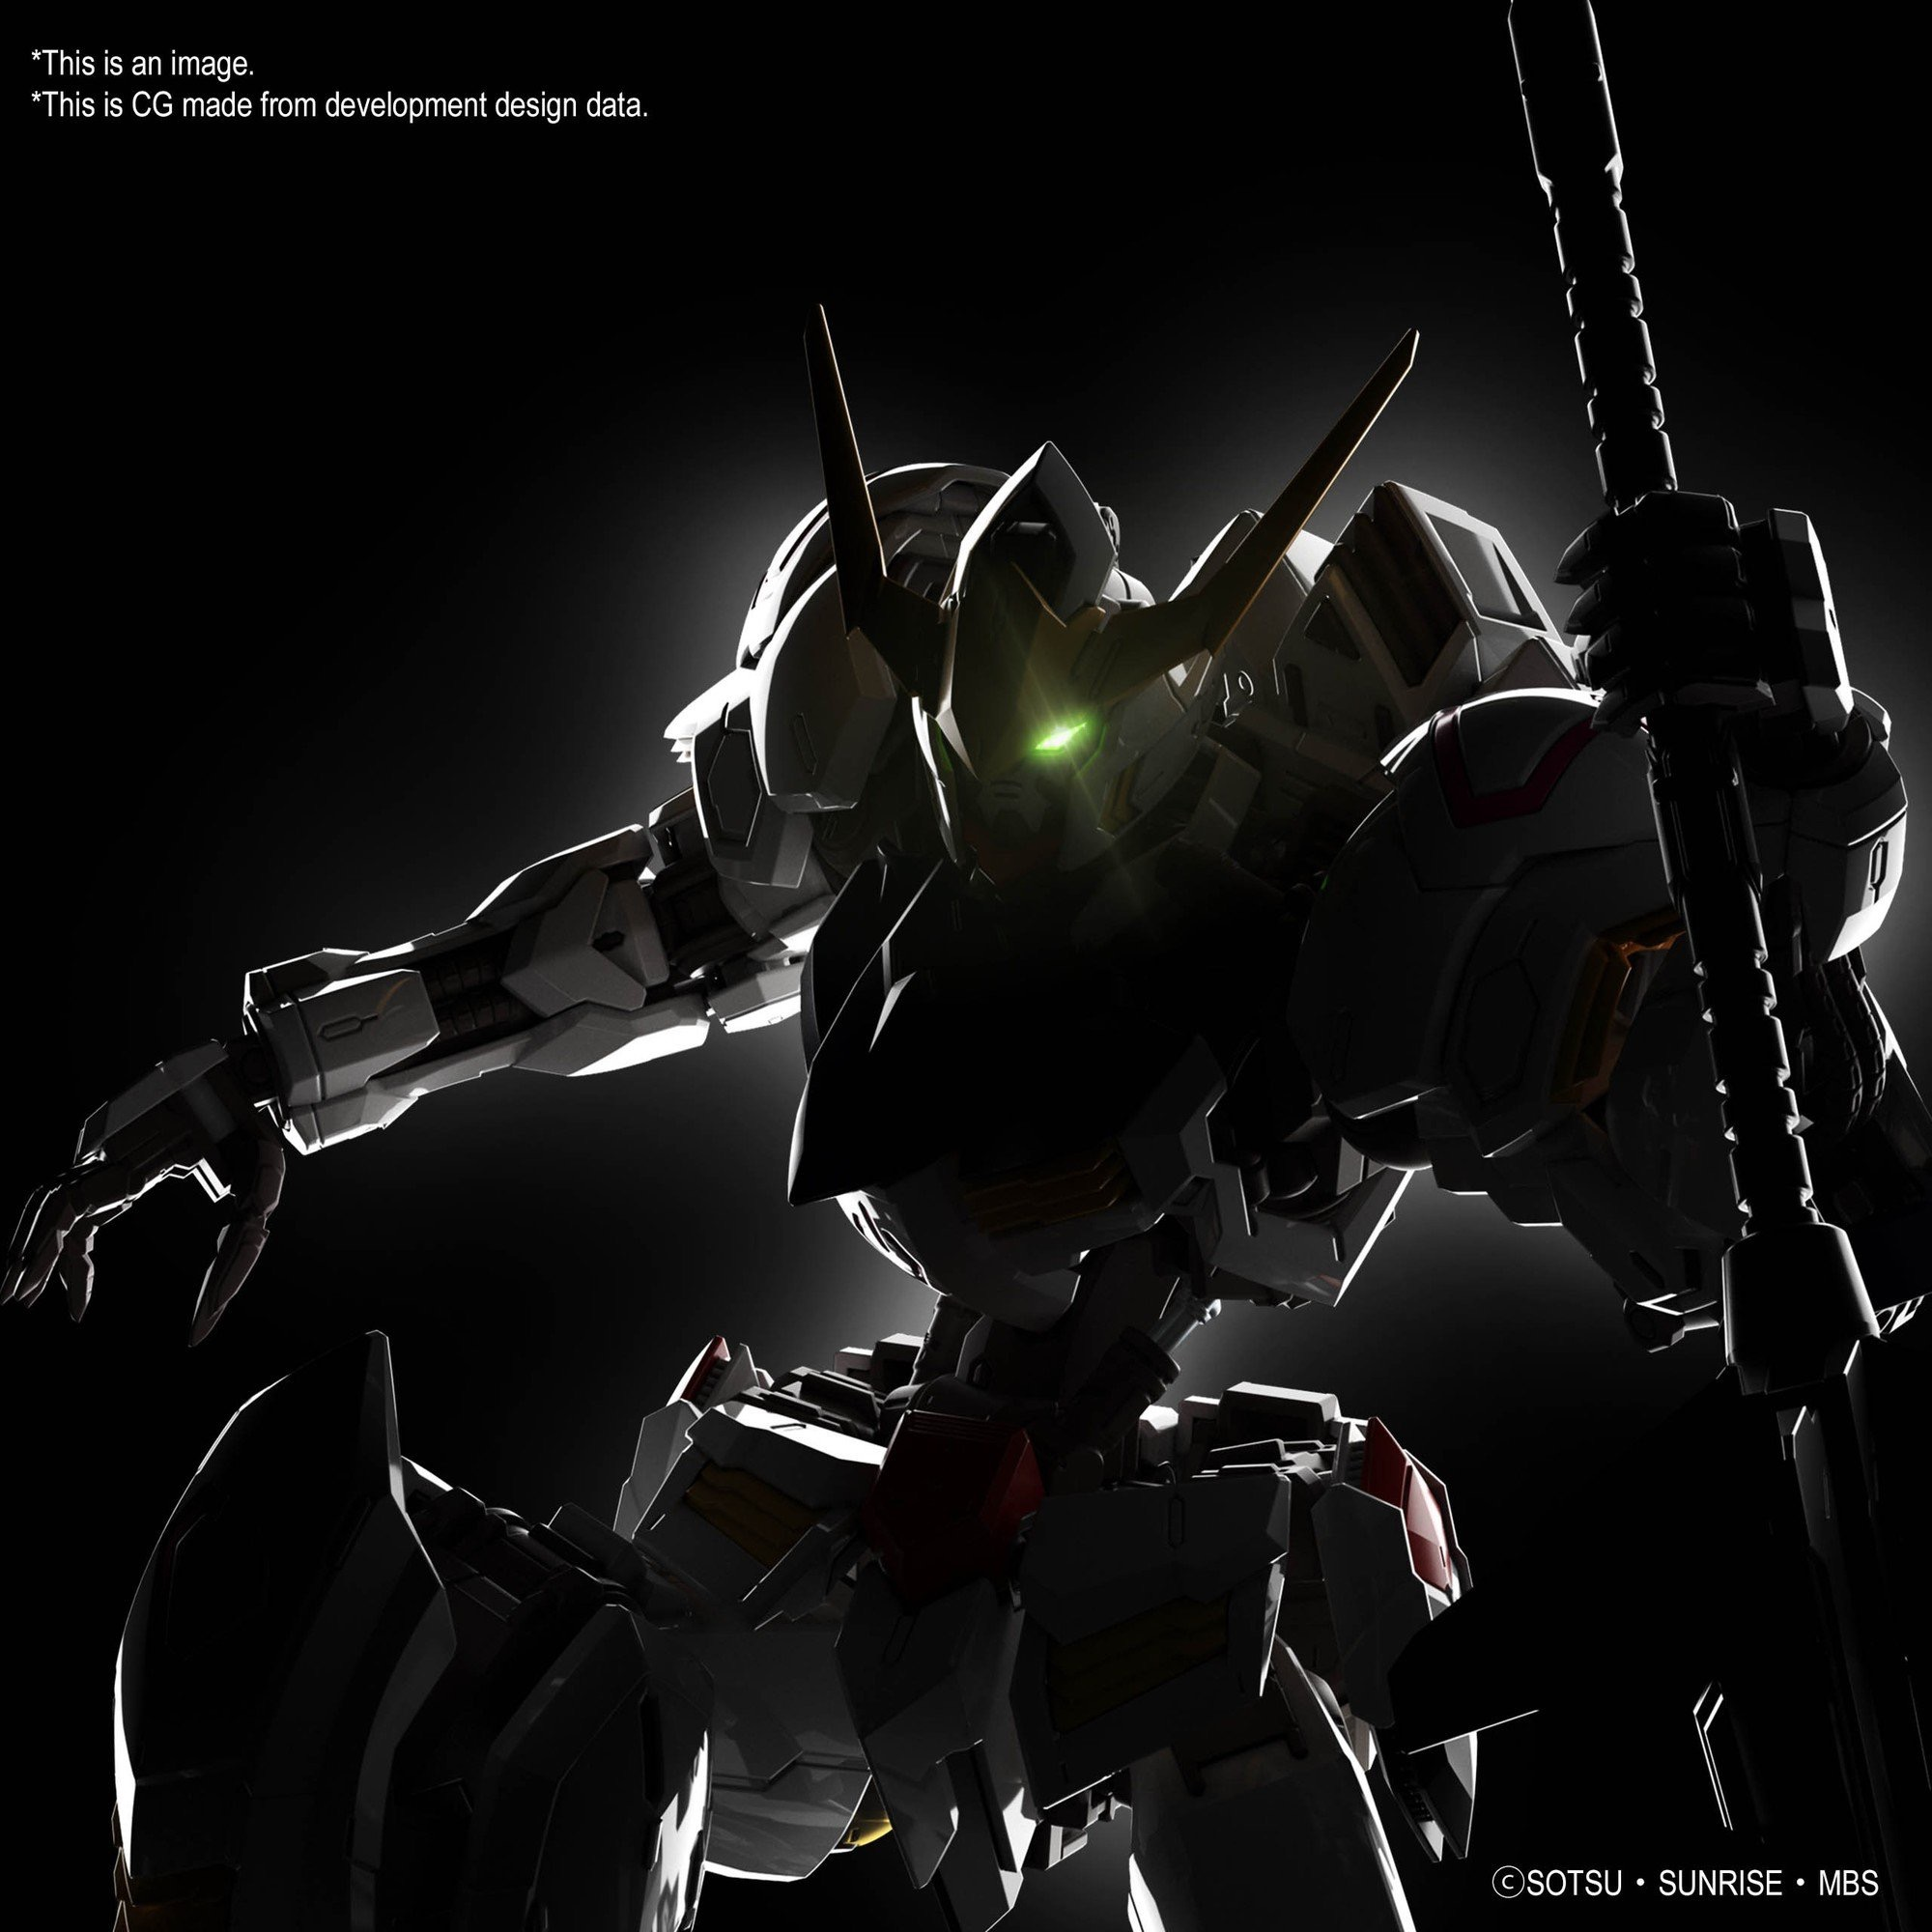 A New 1/100 GUNDAM BARBATOS model kit coming from Gunpla. Images by Bandai Spirits on Twitter